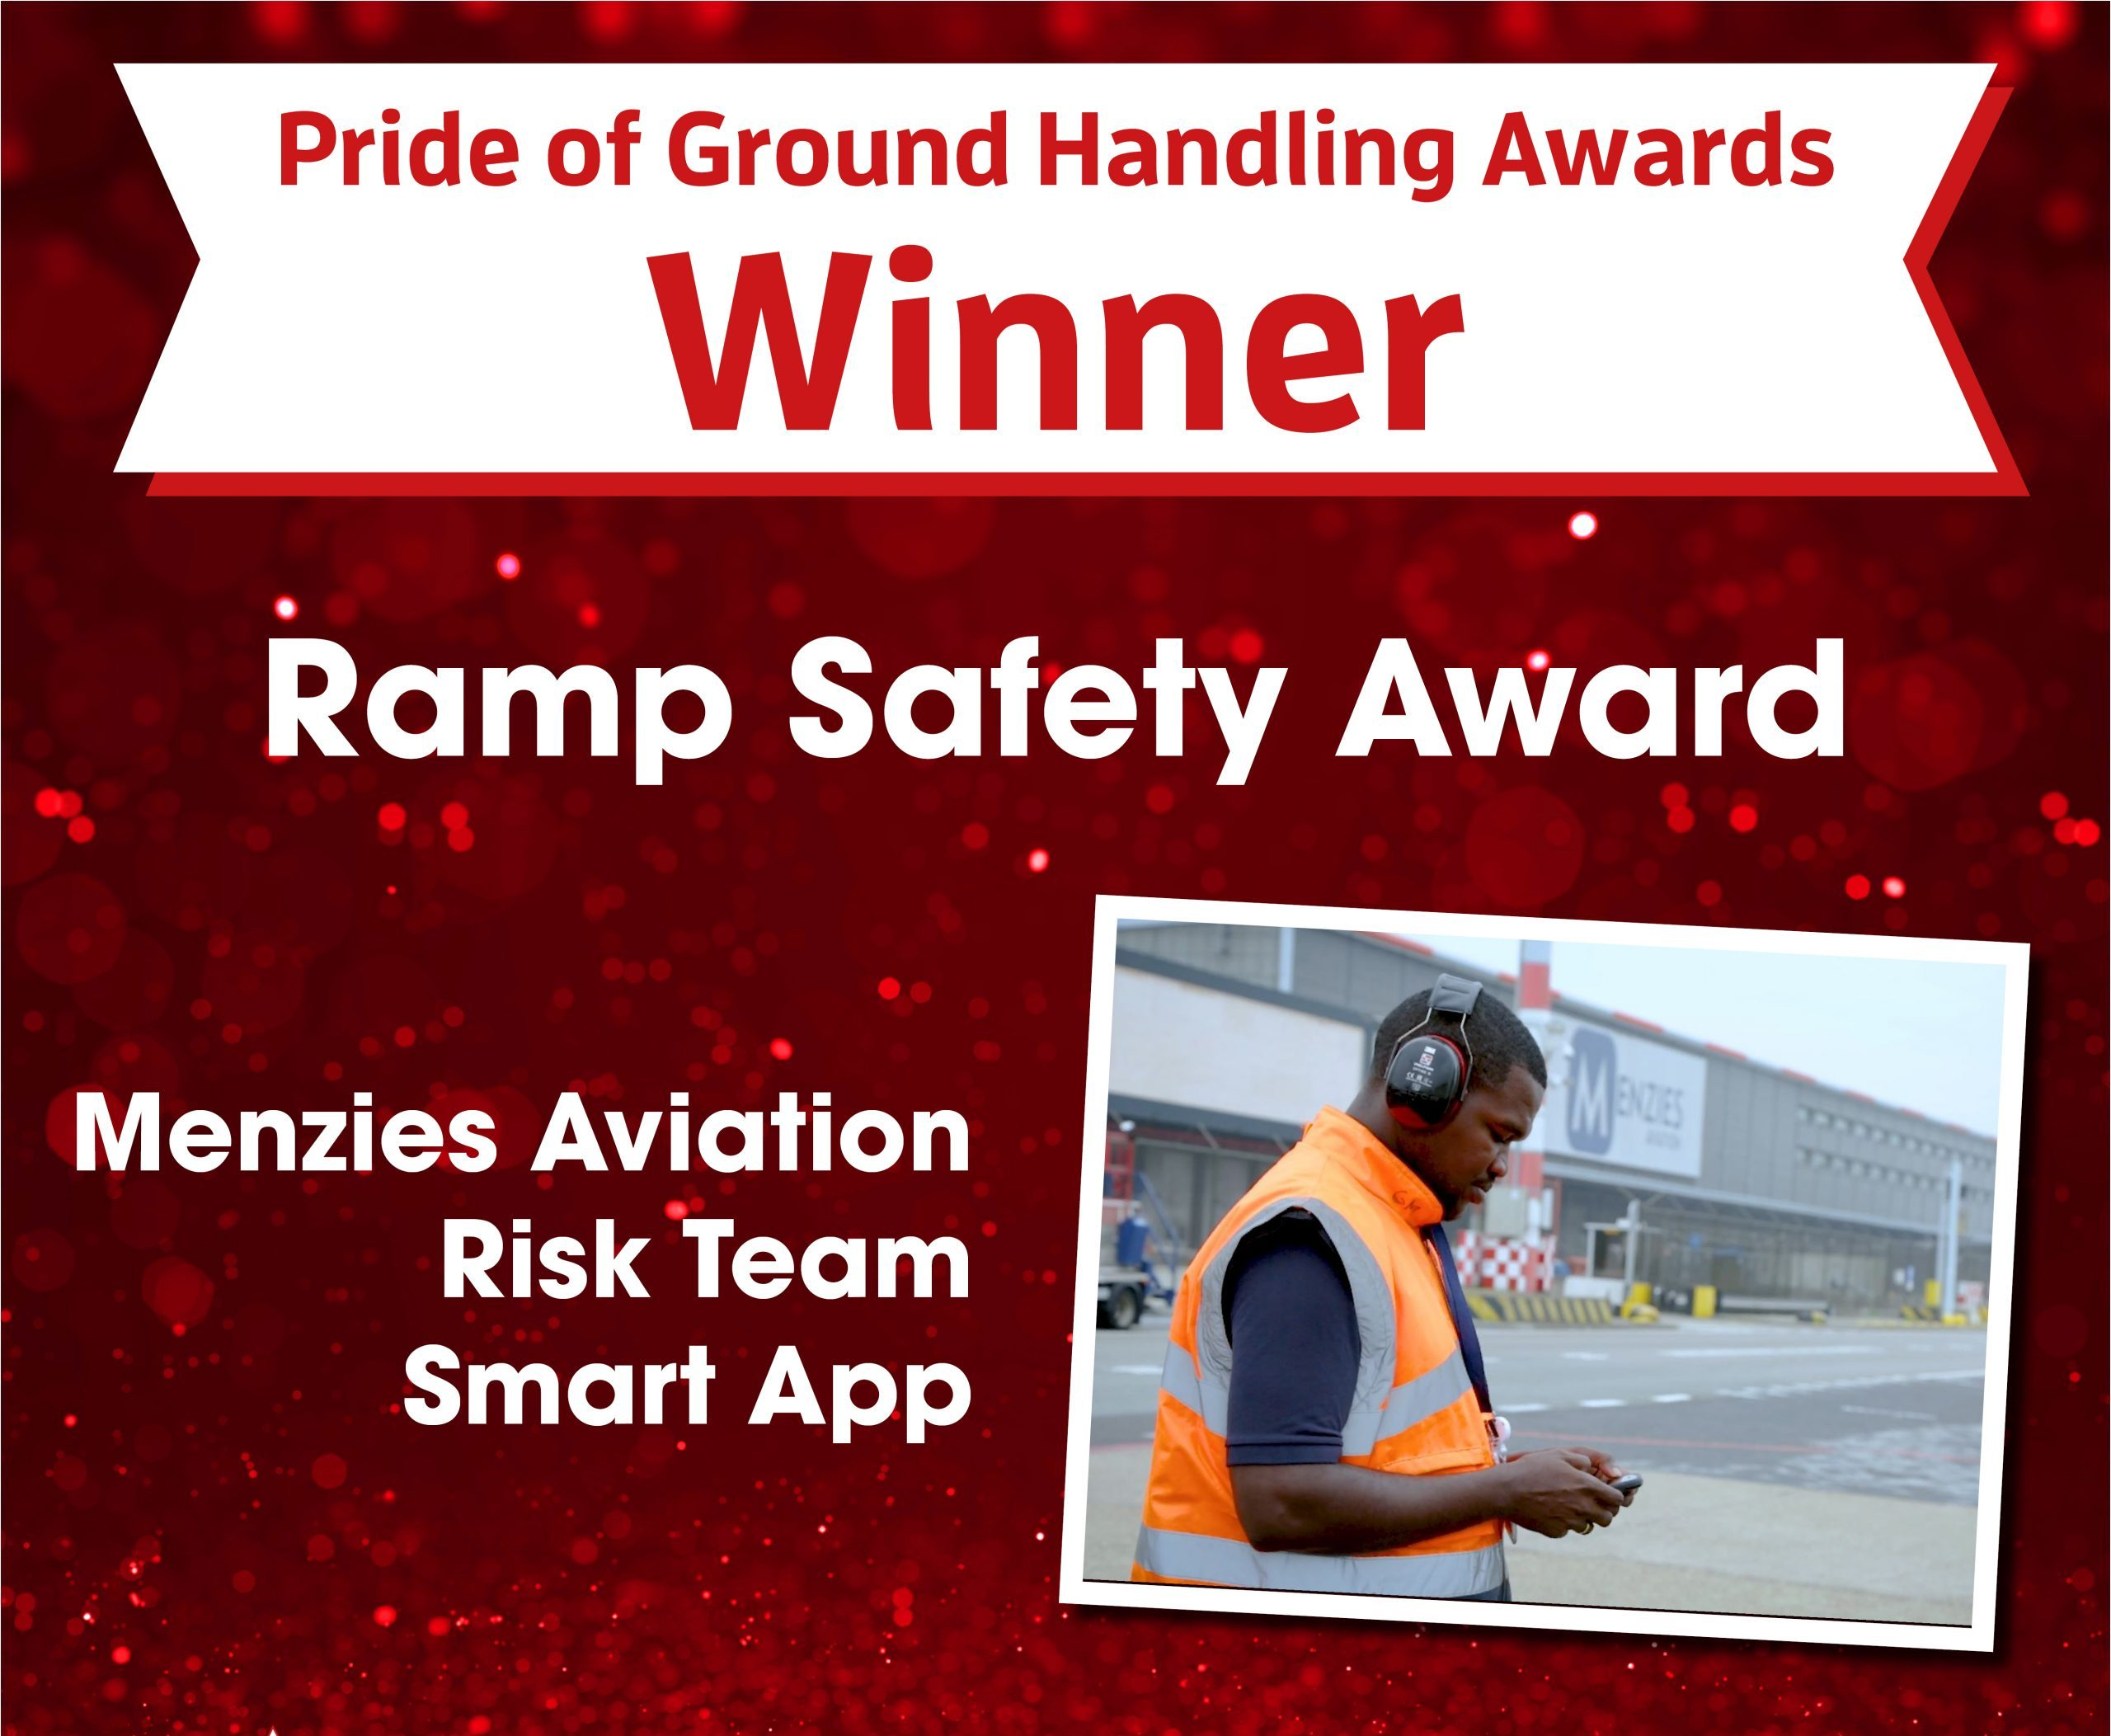 Pride of ground handling awards